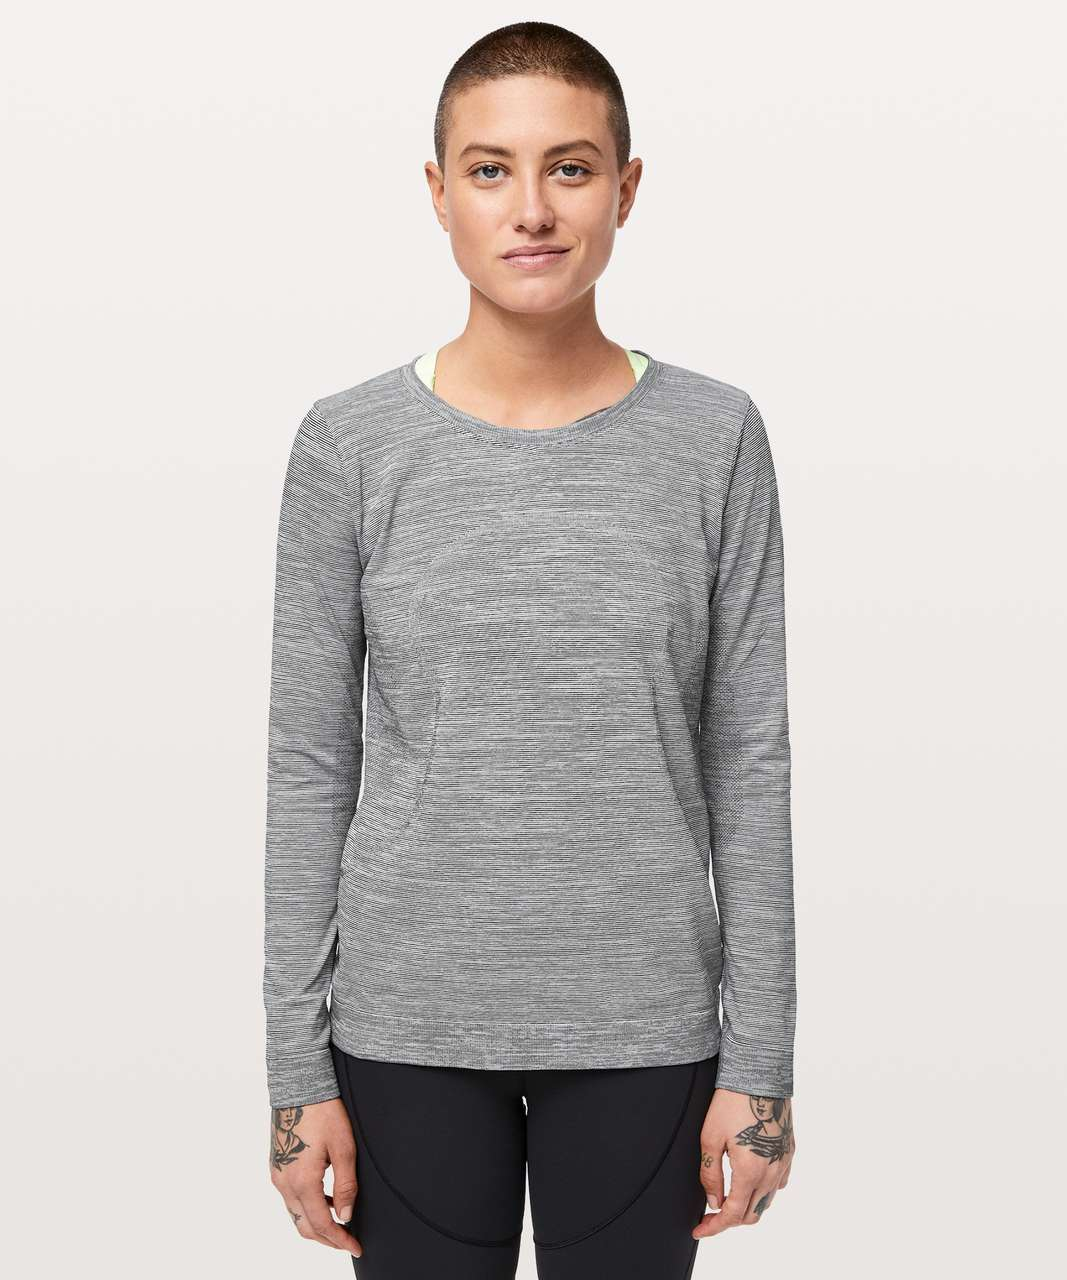 Lululemon Swiftly Tech Long Sleeve (Breeze) *Relaxed Fit - White / White / Black